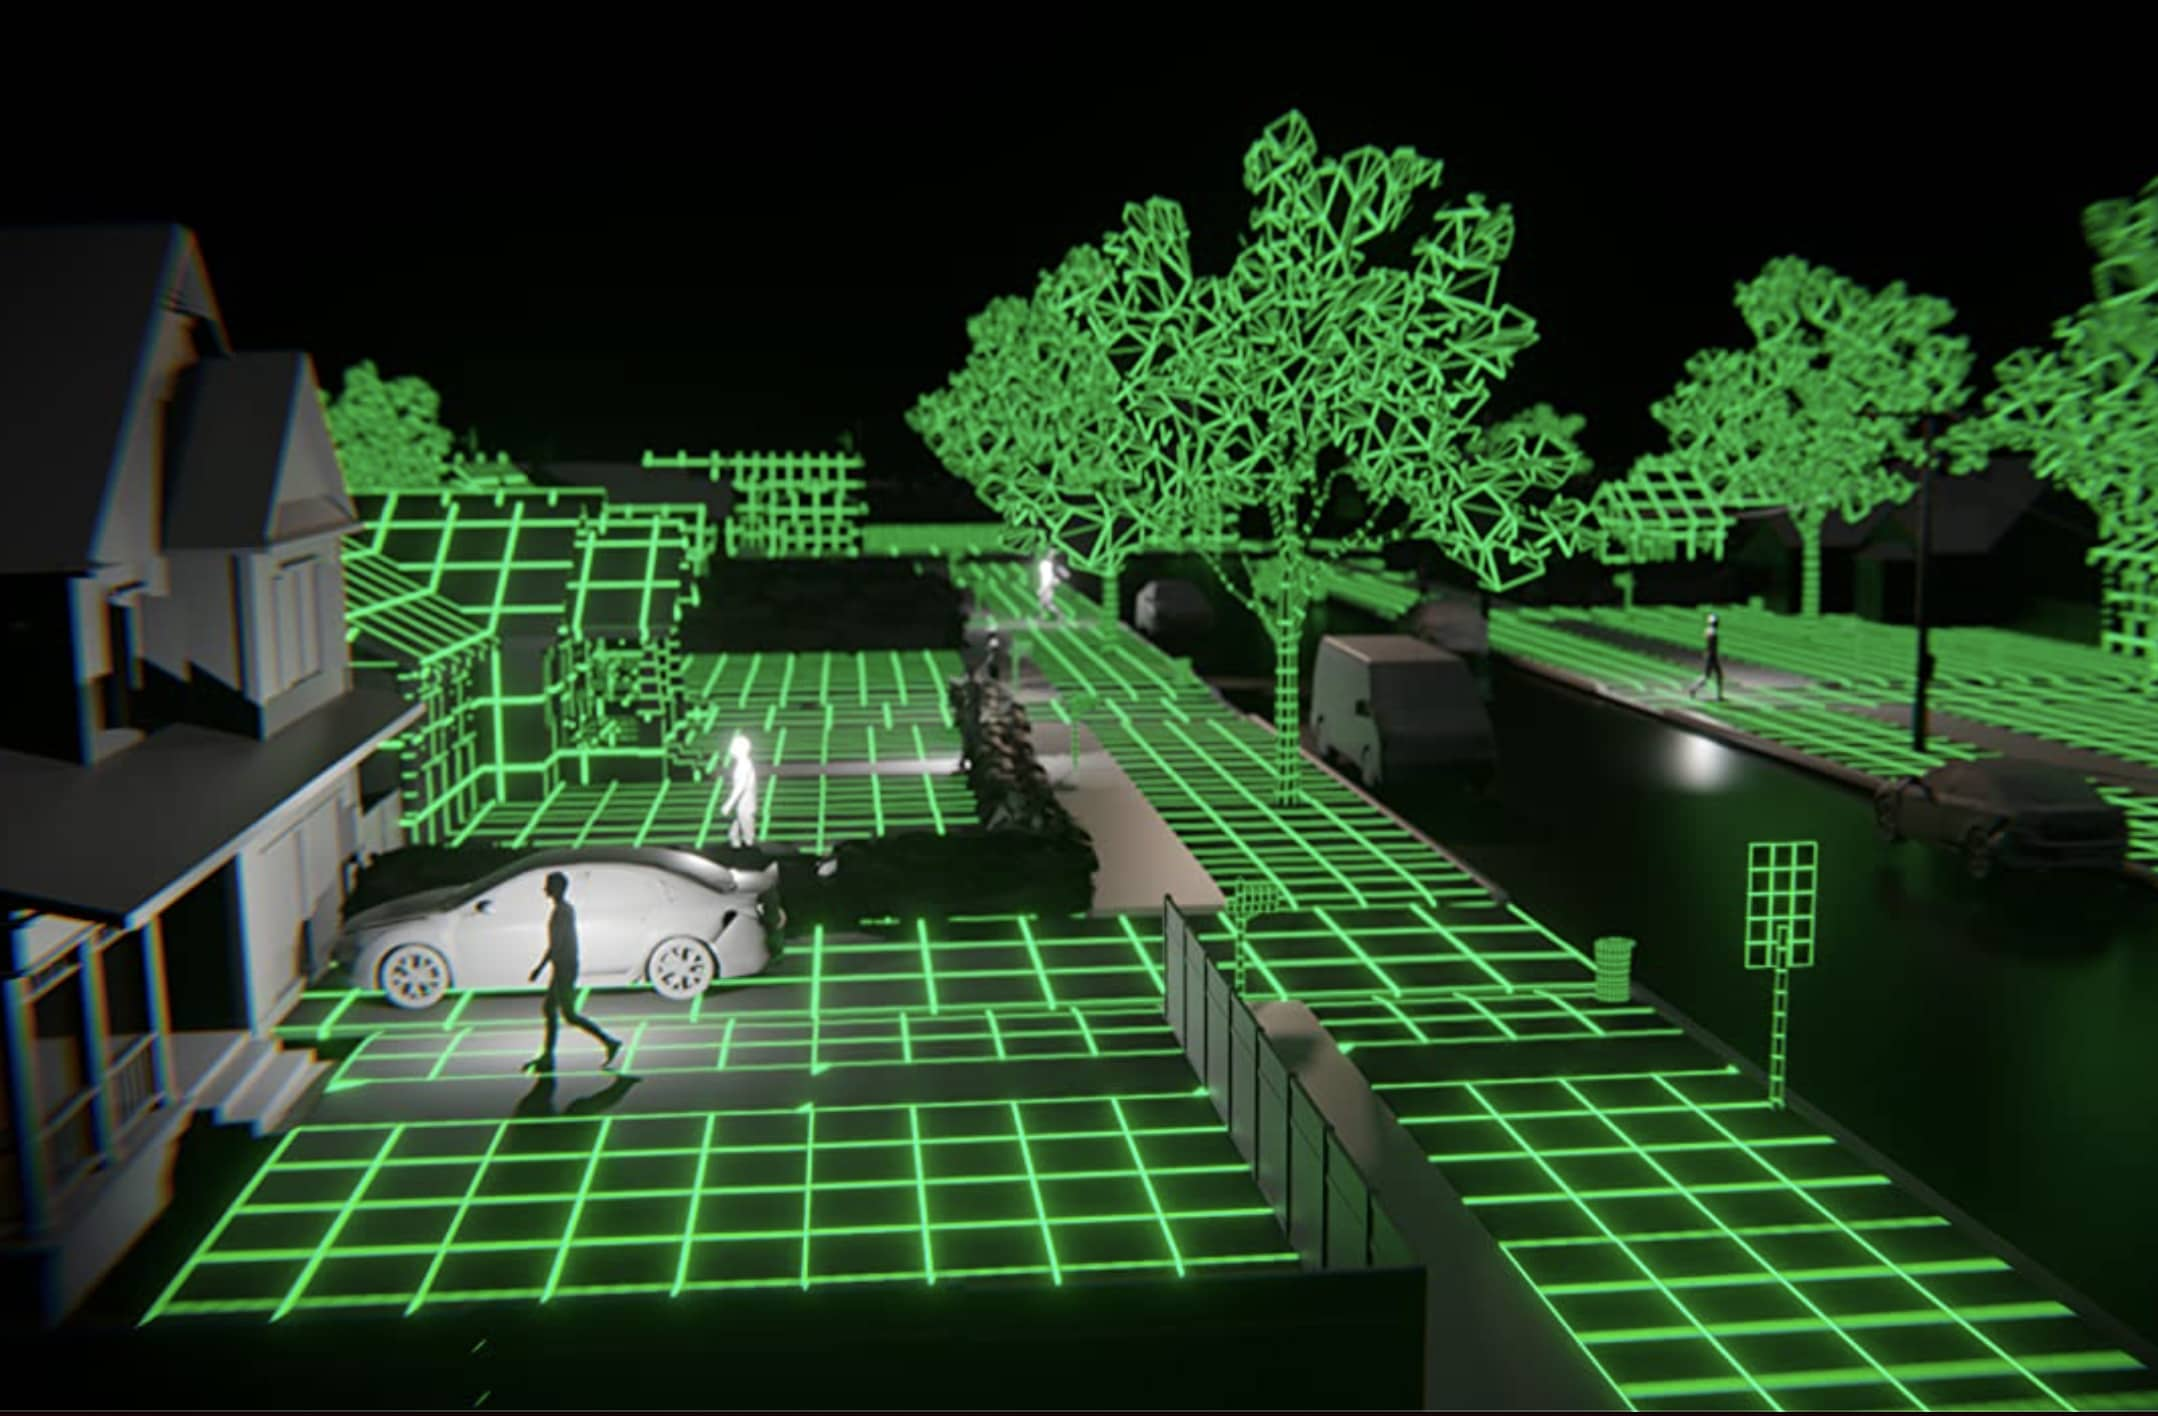 """From """"A Glitch in the Matrix"""" a green graphed computer simulation of a neighborhood"""